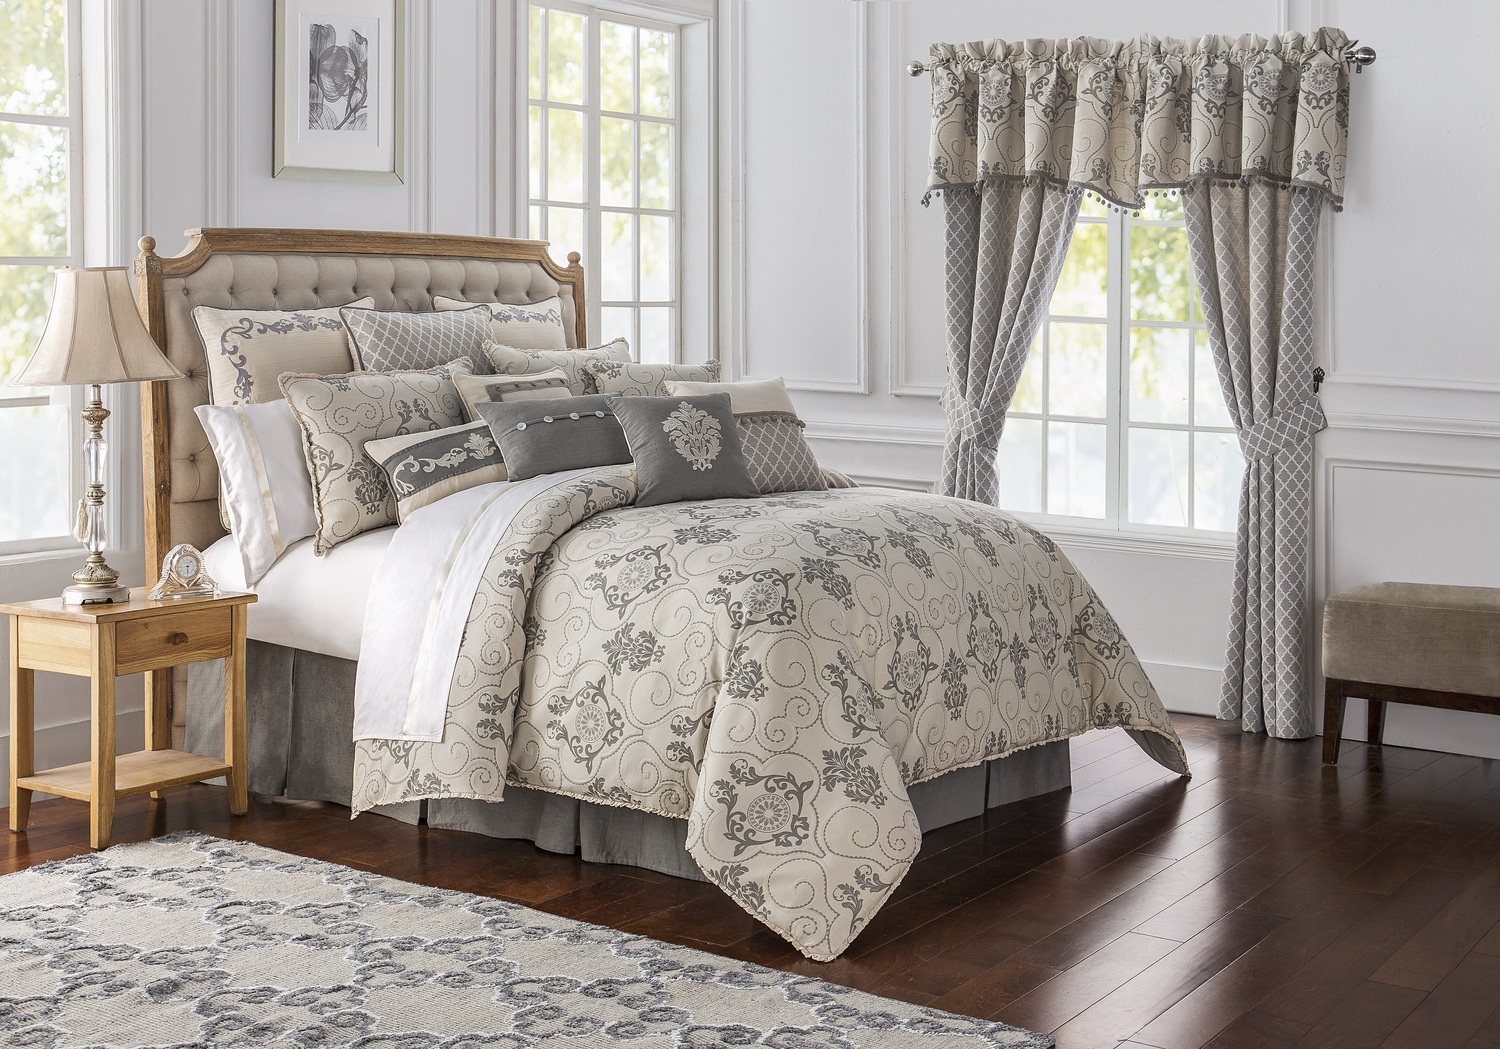 Maura Natural Waterford Luxury Bedding  BeddingSuperStorecom